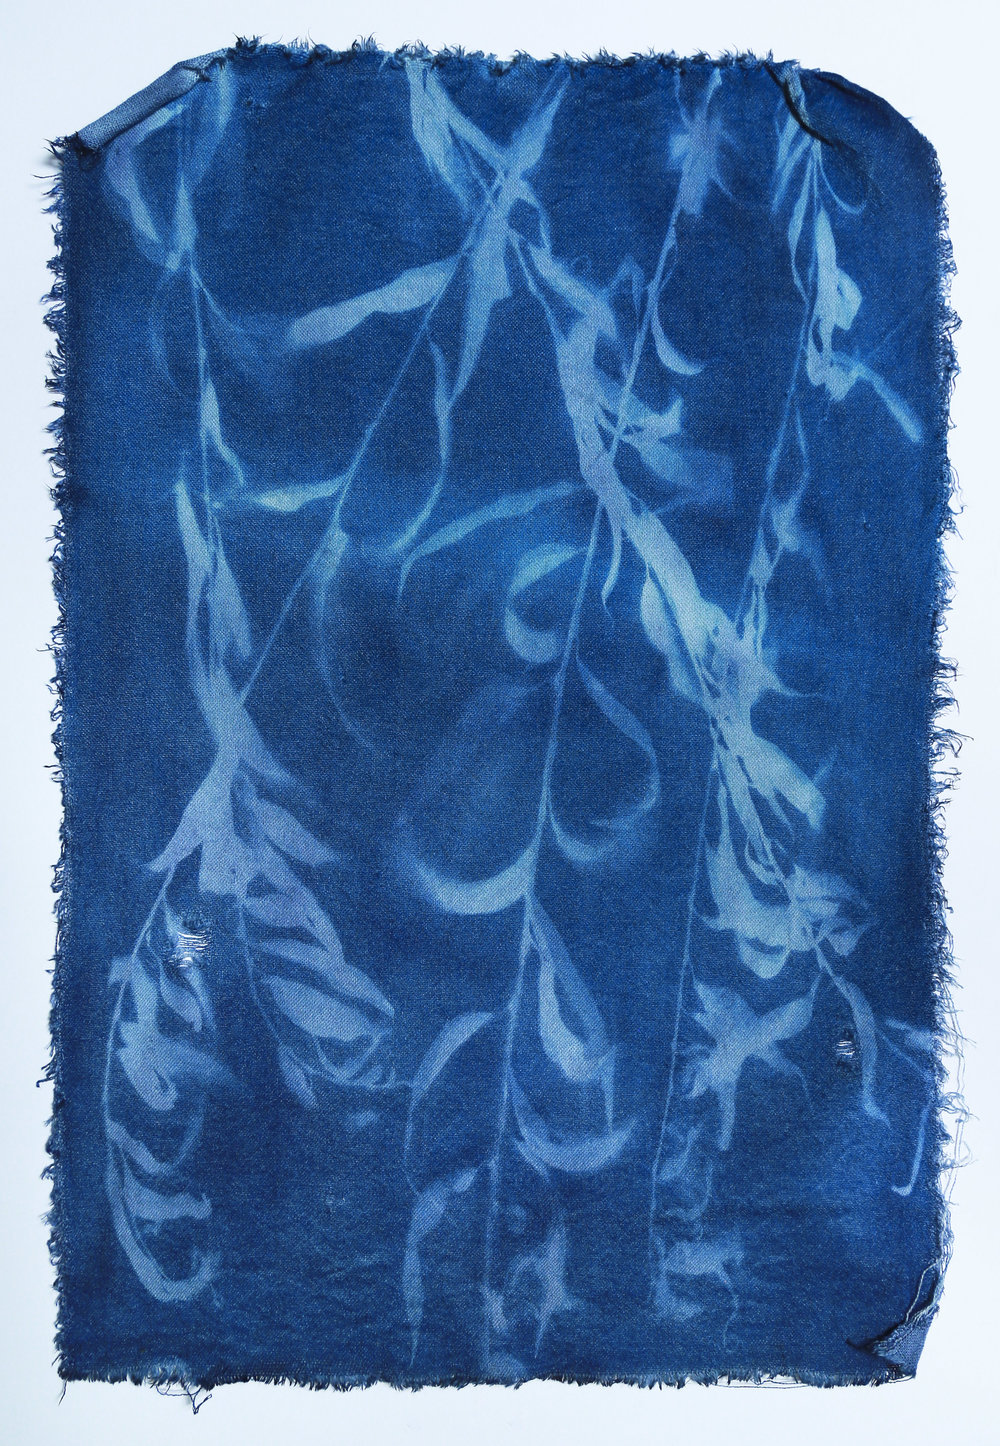 Saule pleureur on linen wool blend II